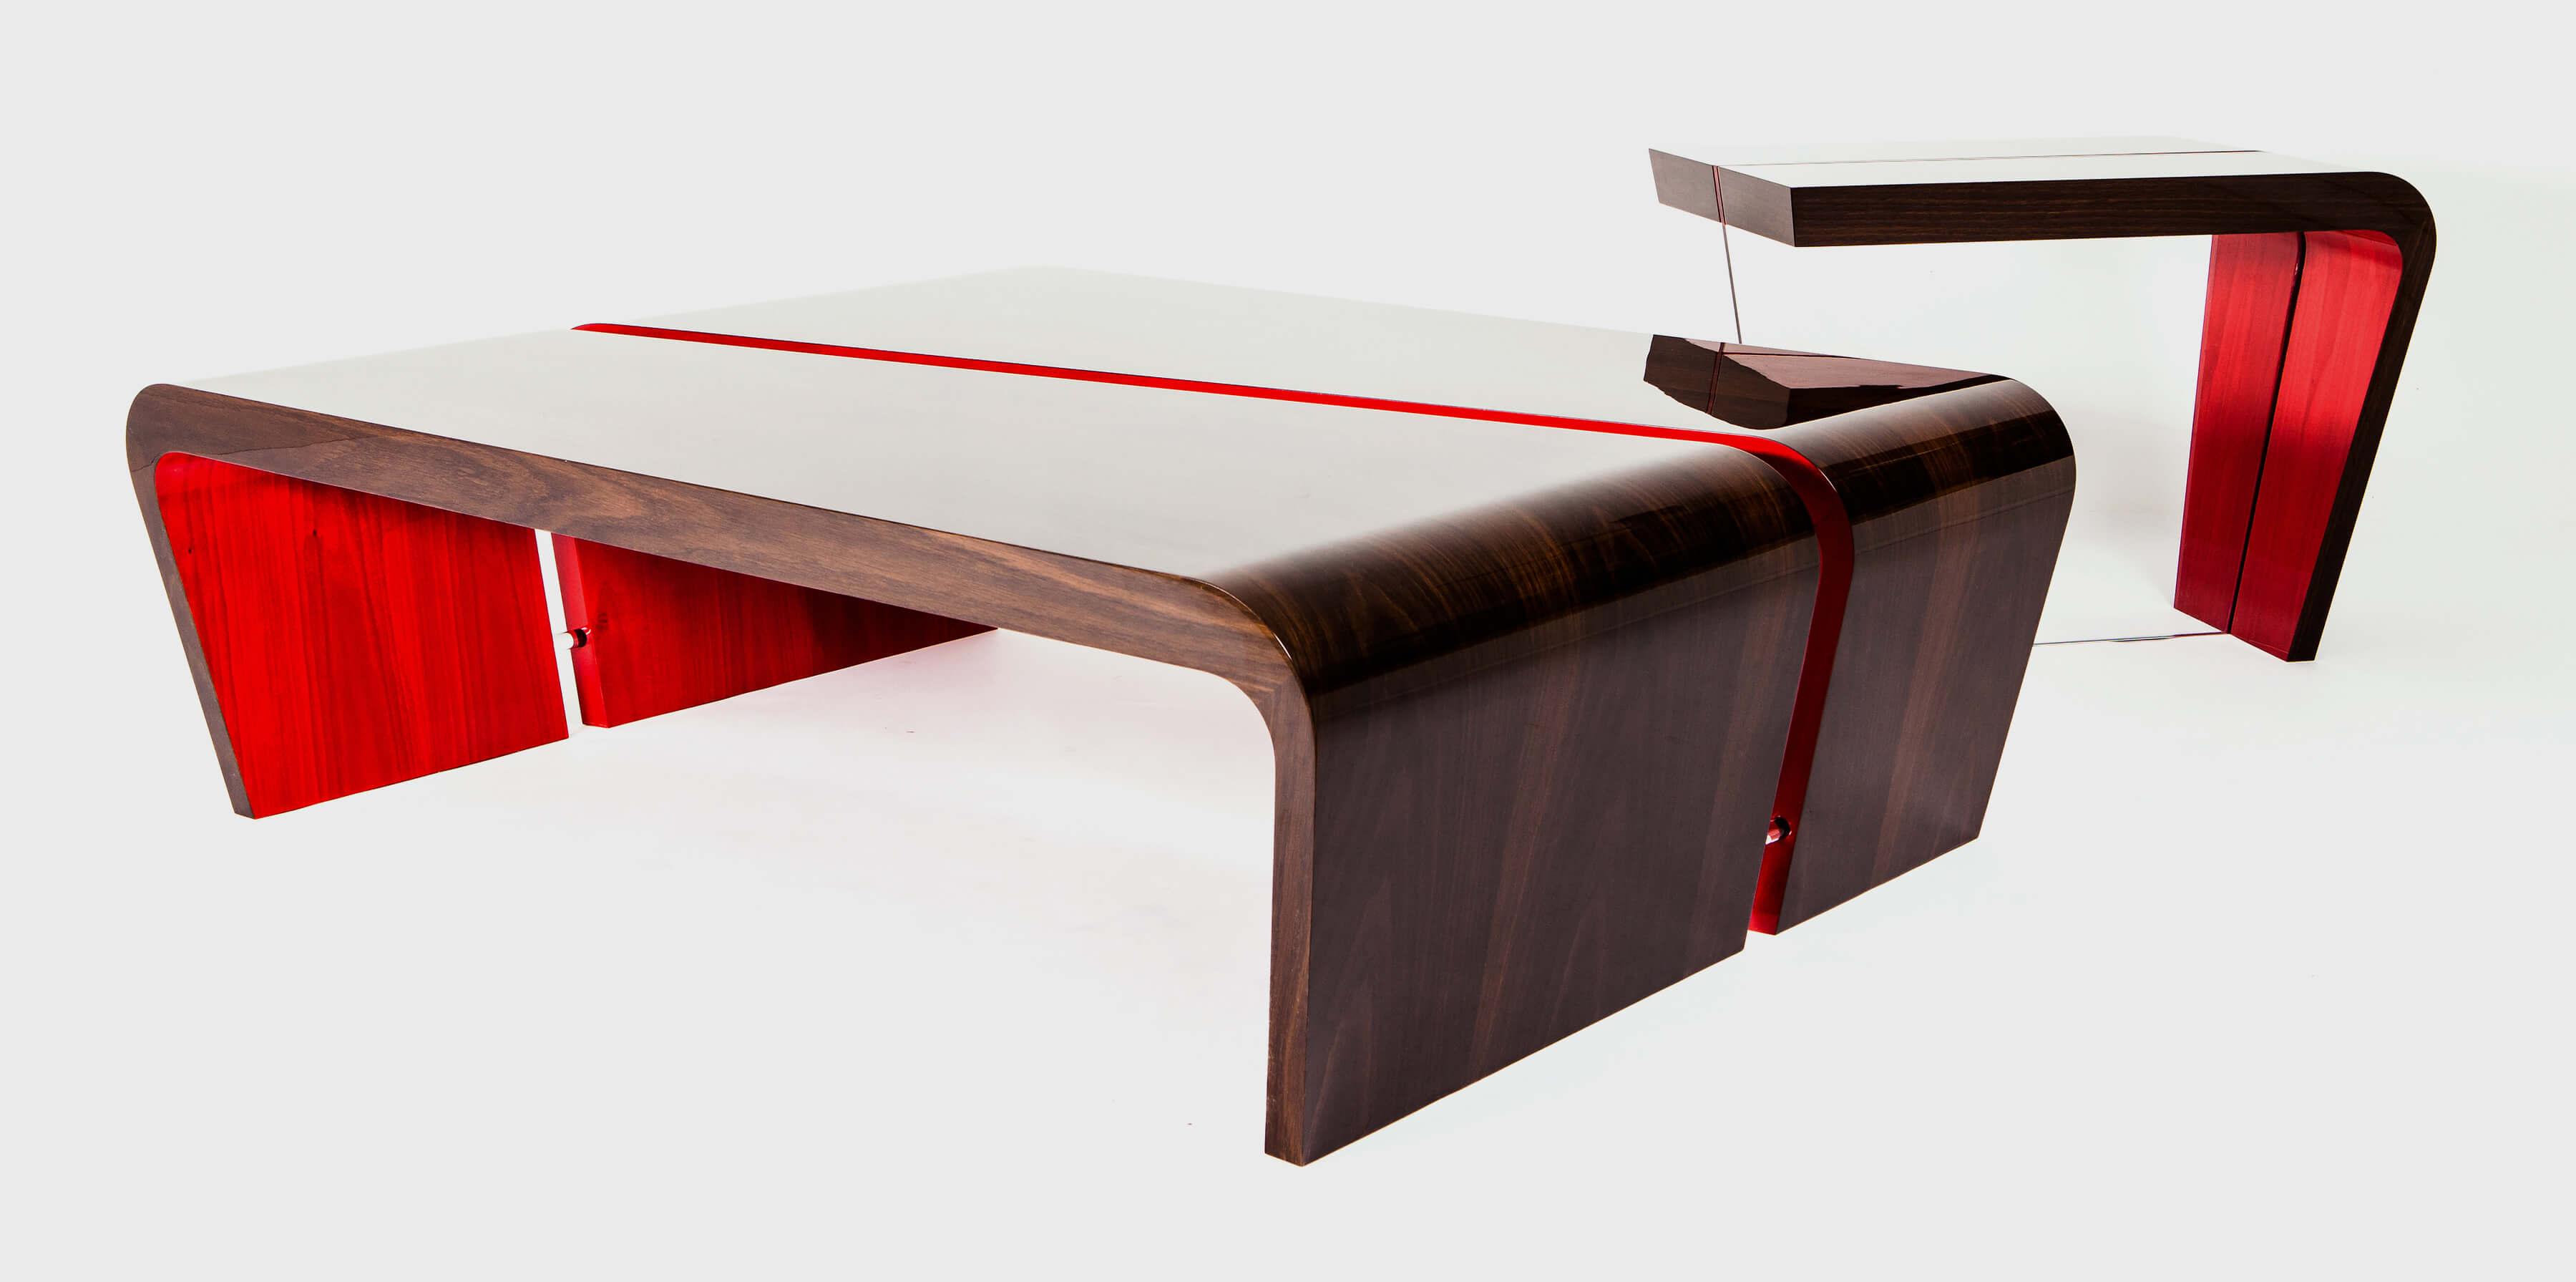 Rima, custom made pair of side tables with red underside by Splinterworks